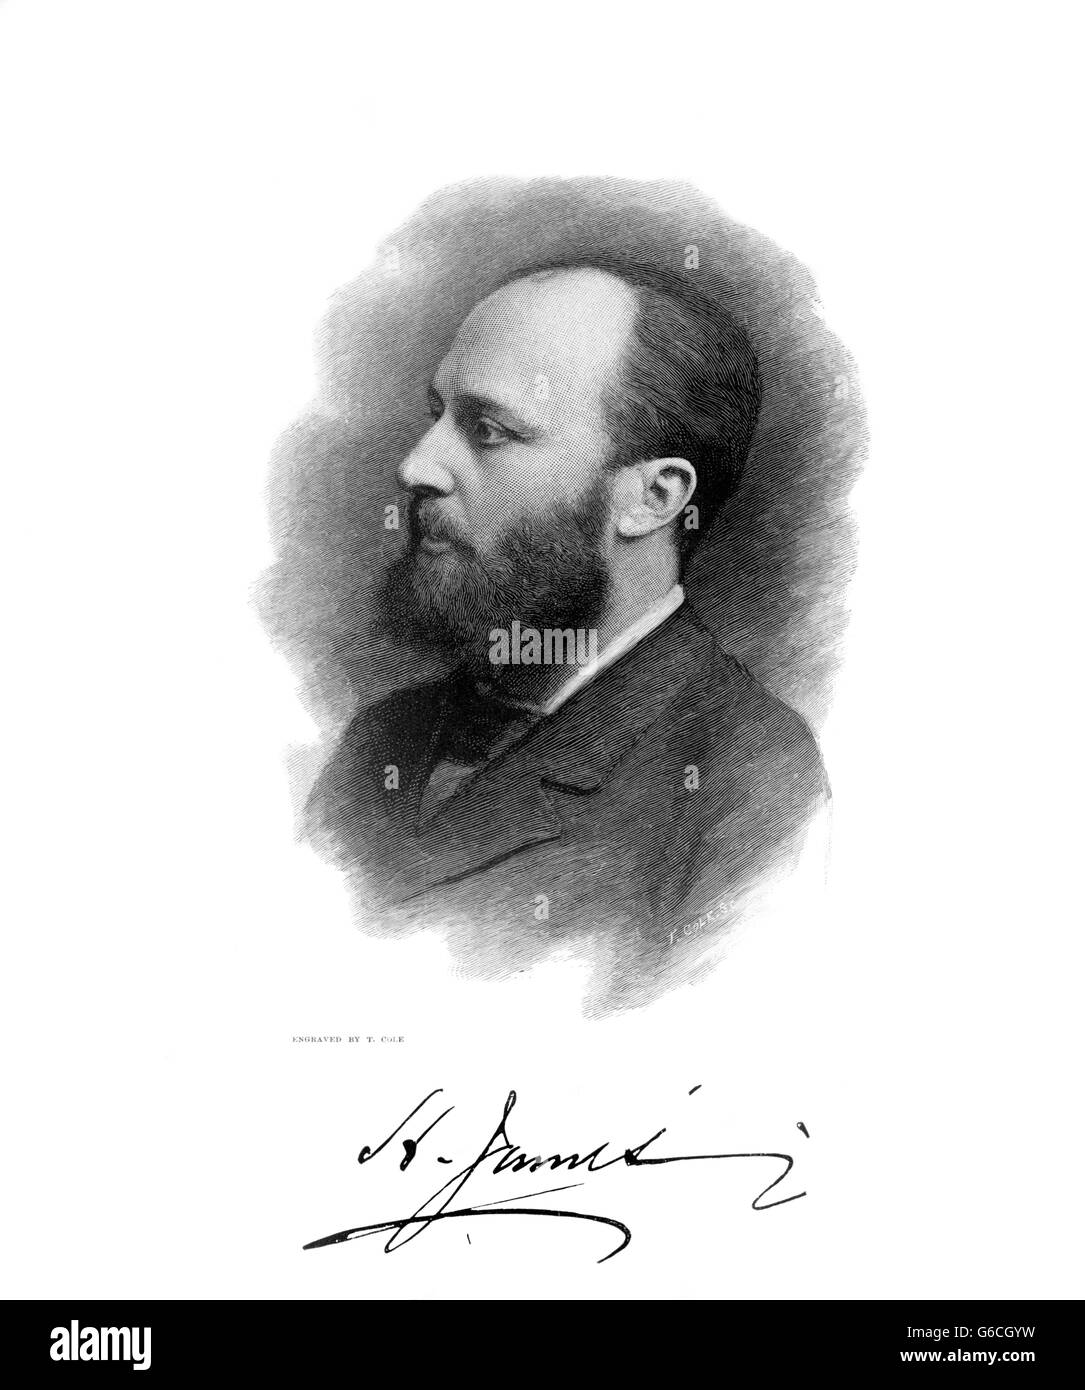 PORTRAIT OF AMERICAN NOVELIST HENRY JAMES WITH SIGNATURE - Stock Image